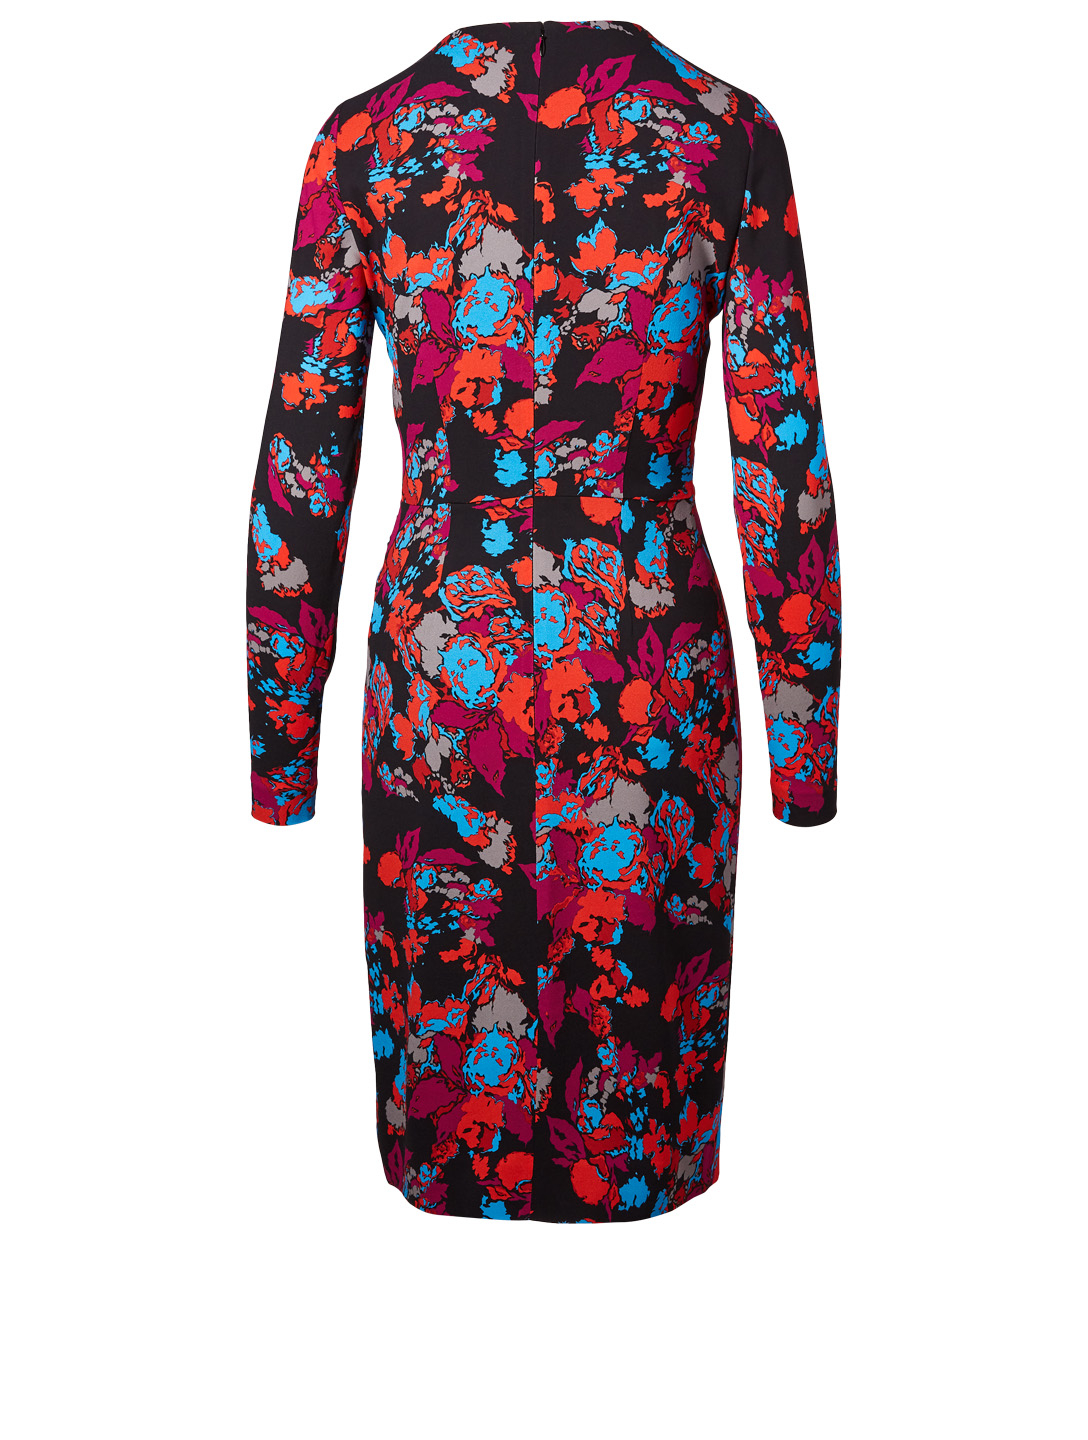 GIVENCHY Crêpe Dress In Floral Print Womens Multi